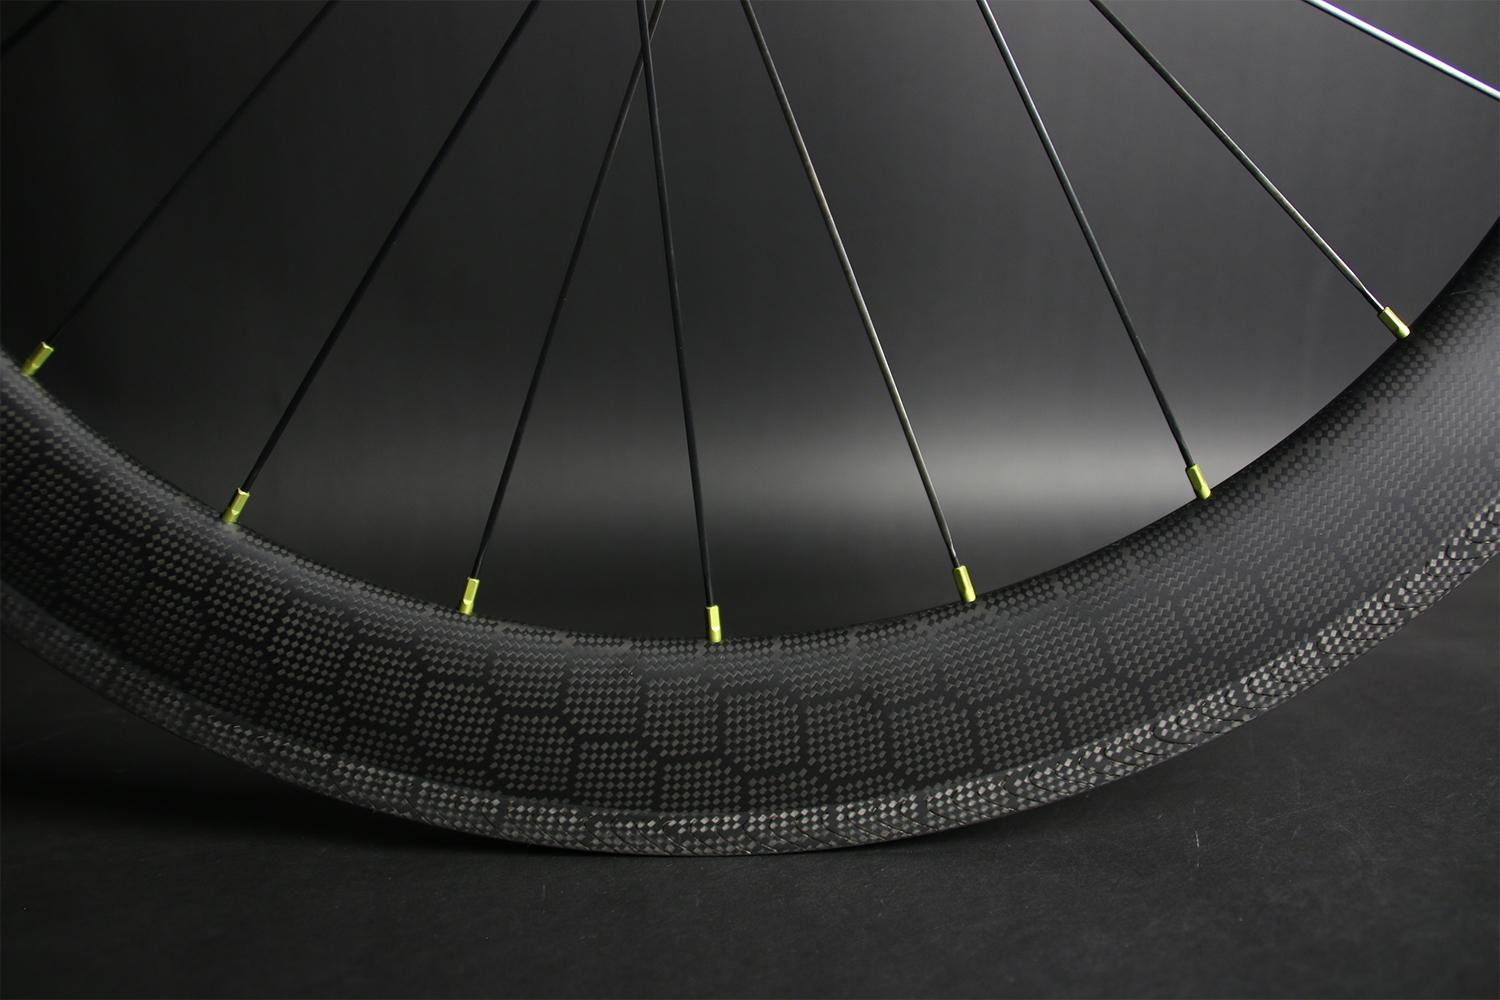 light-bicycle-hexa-comb-weave-carbon-fiber-wheel